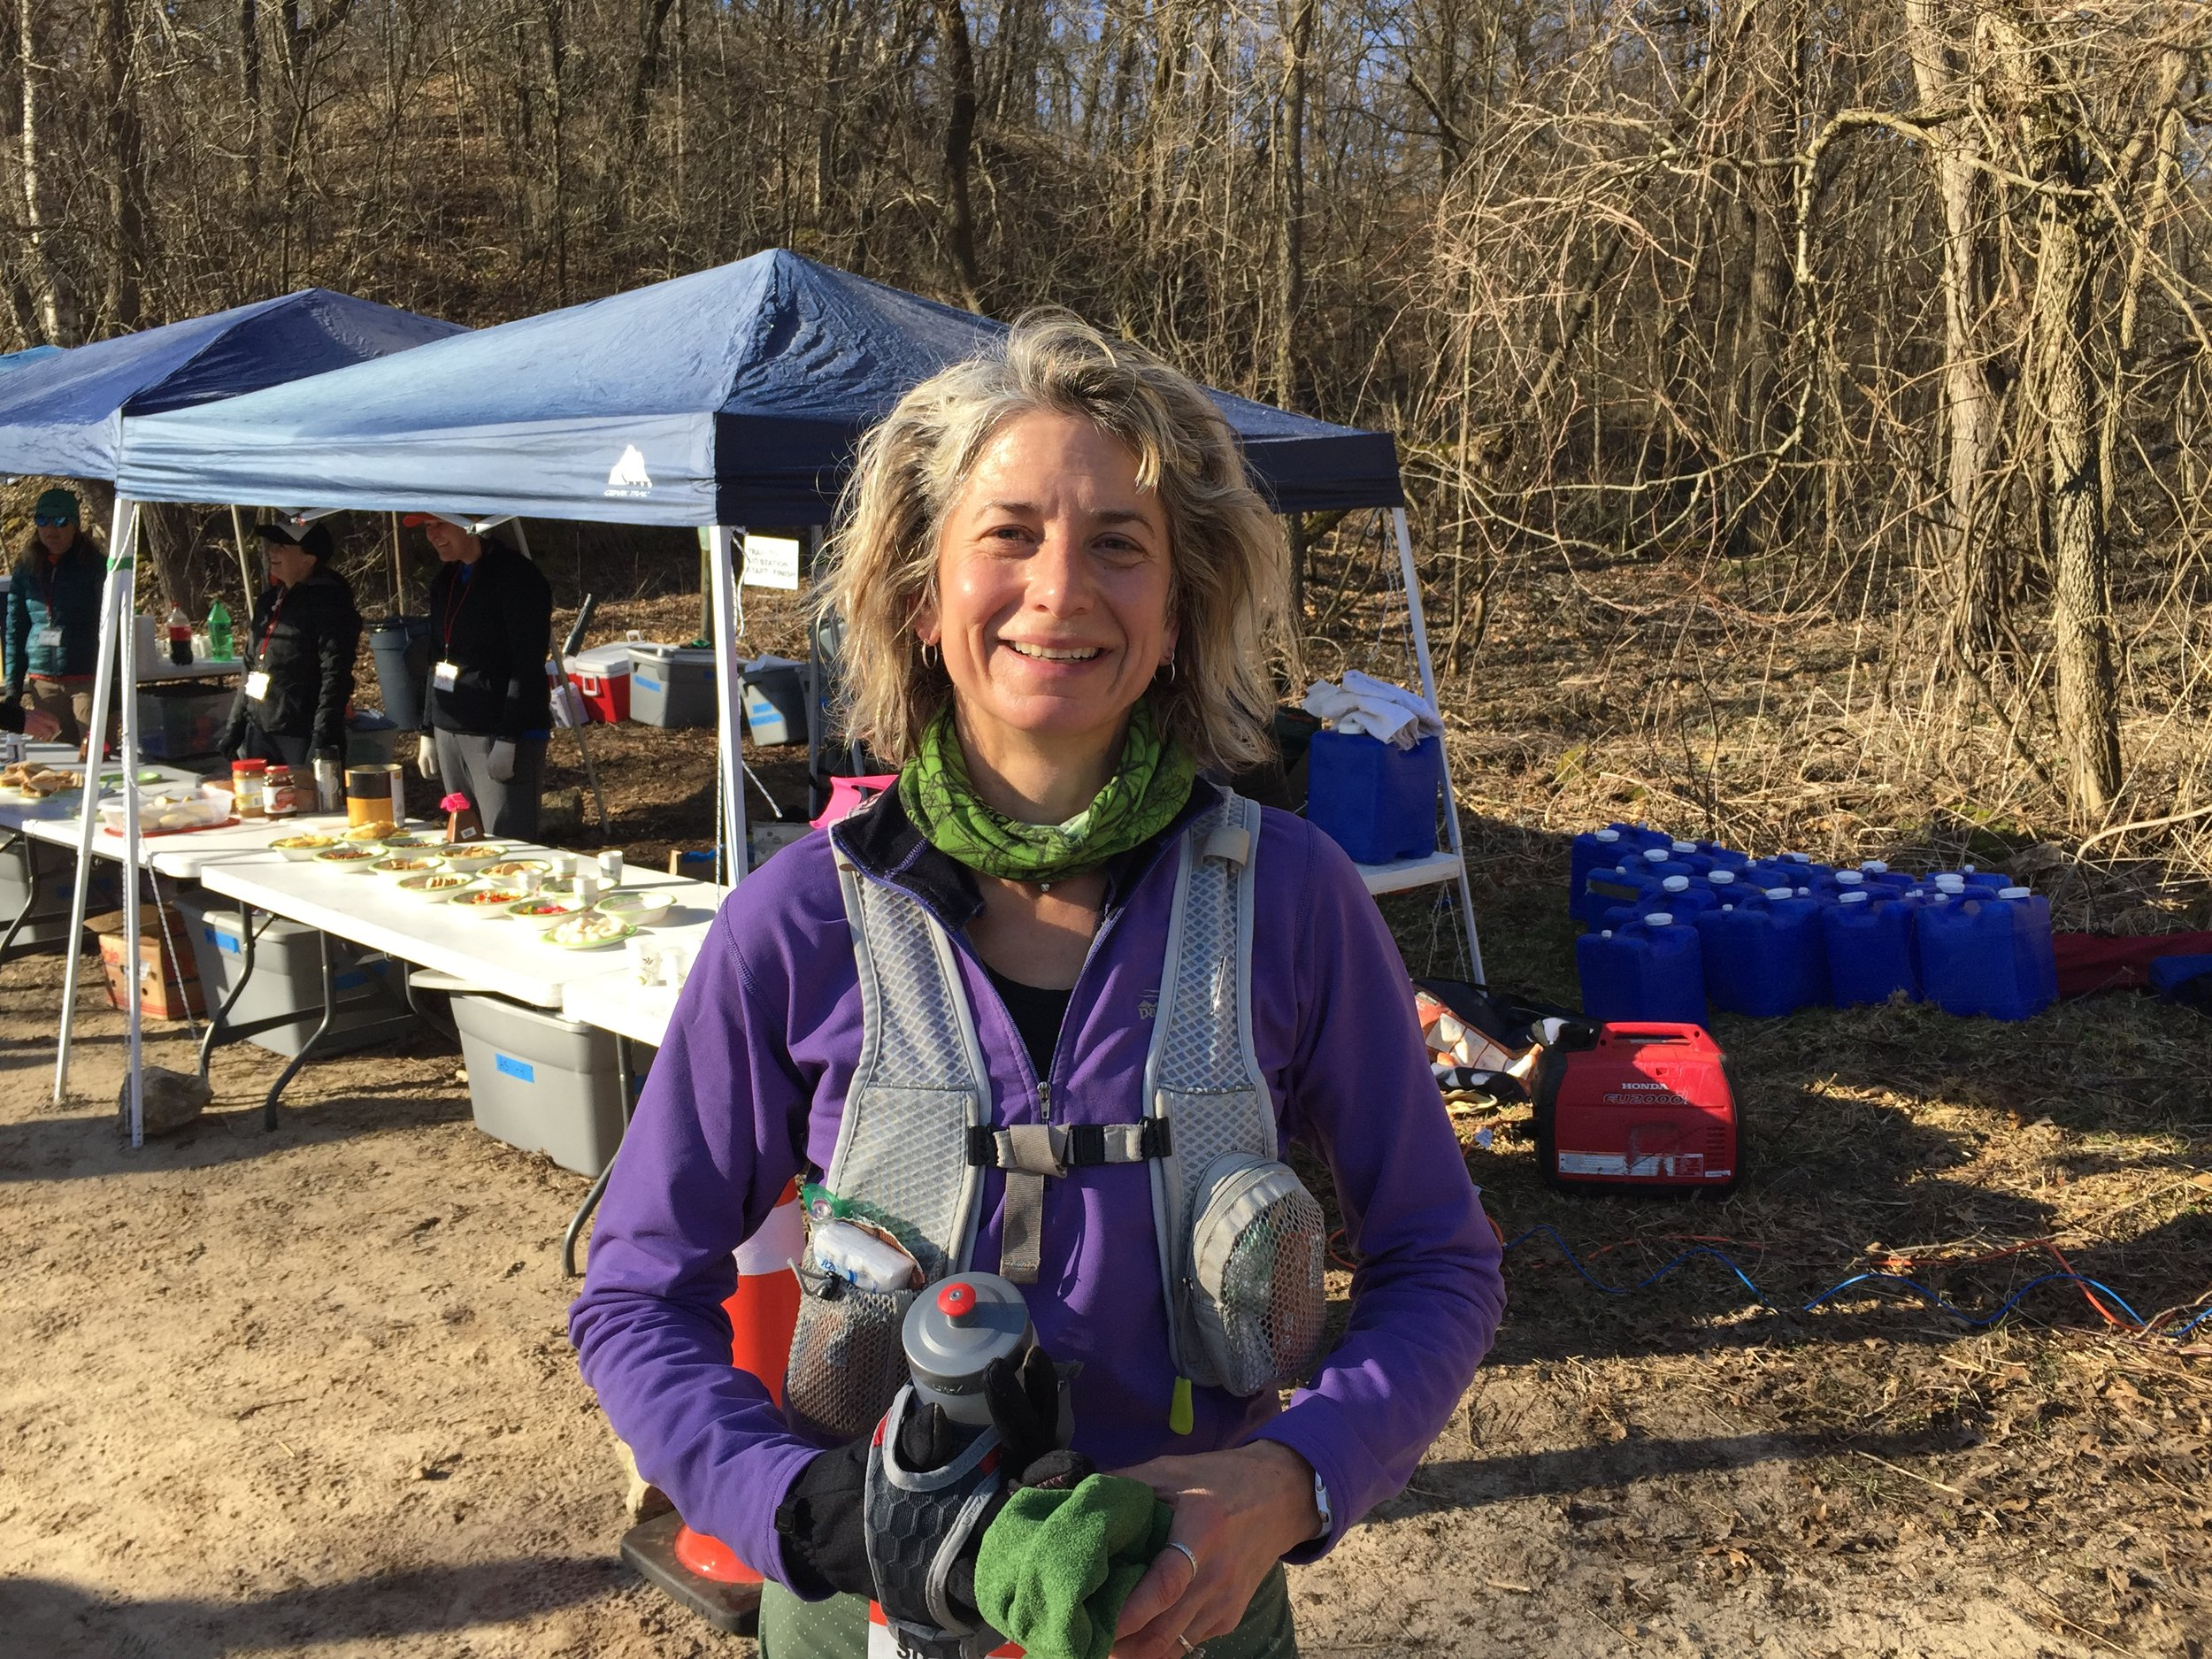 Susan Donnelly at a Zumbro 100 aid station